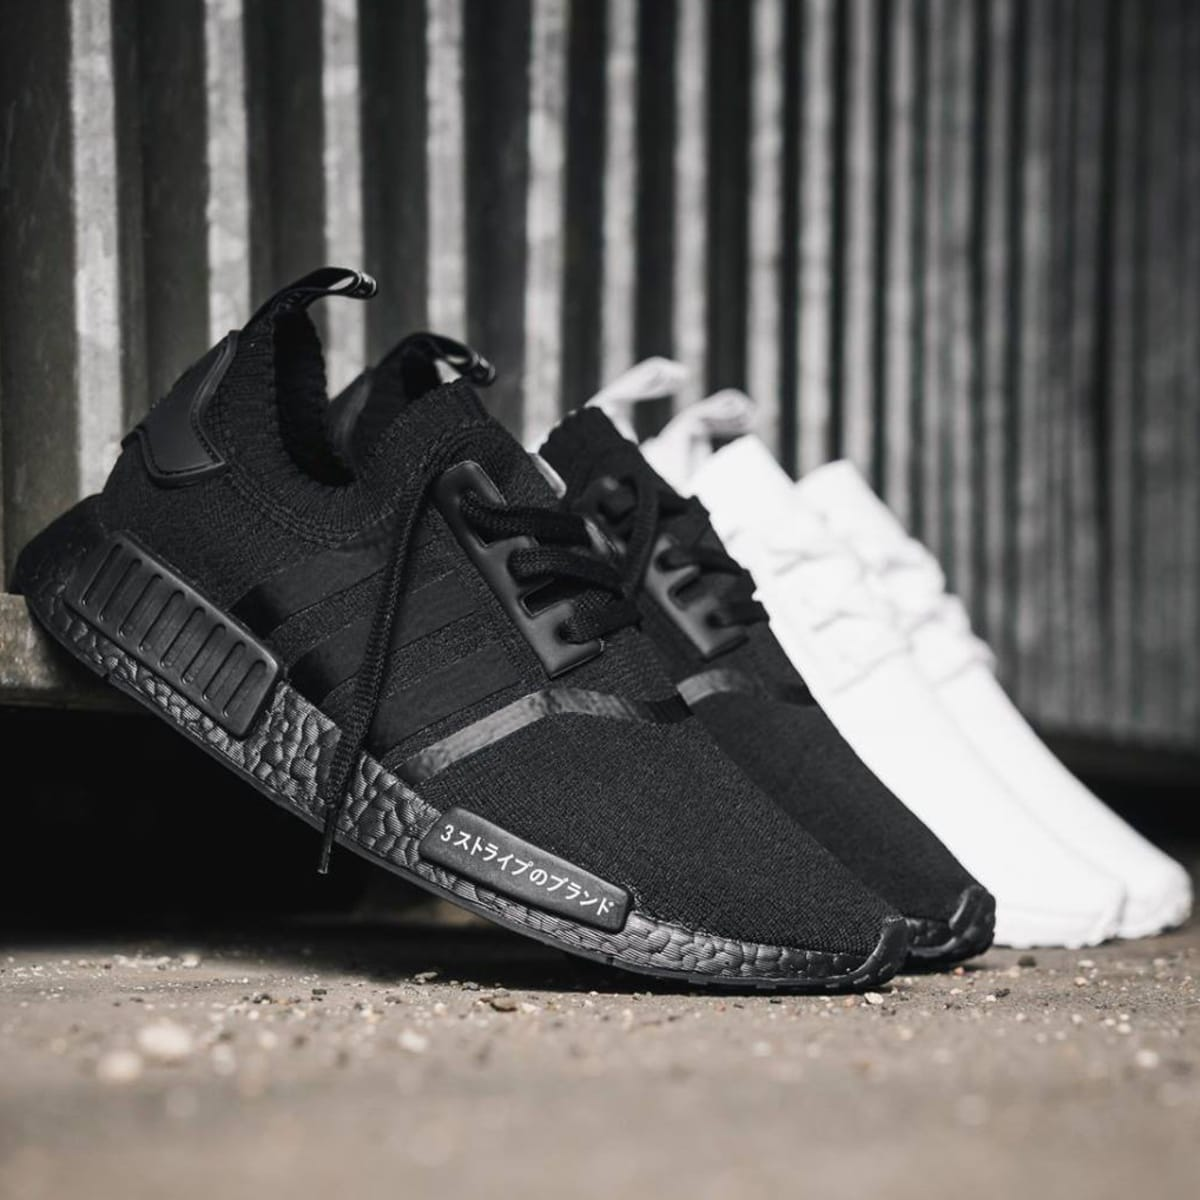 The Adidas Nmd R1 Japan Pack Arrives This Week Freshness Mag